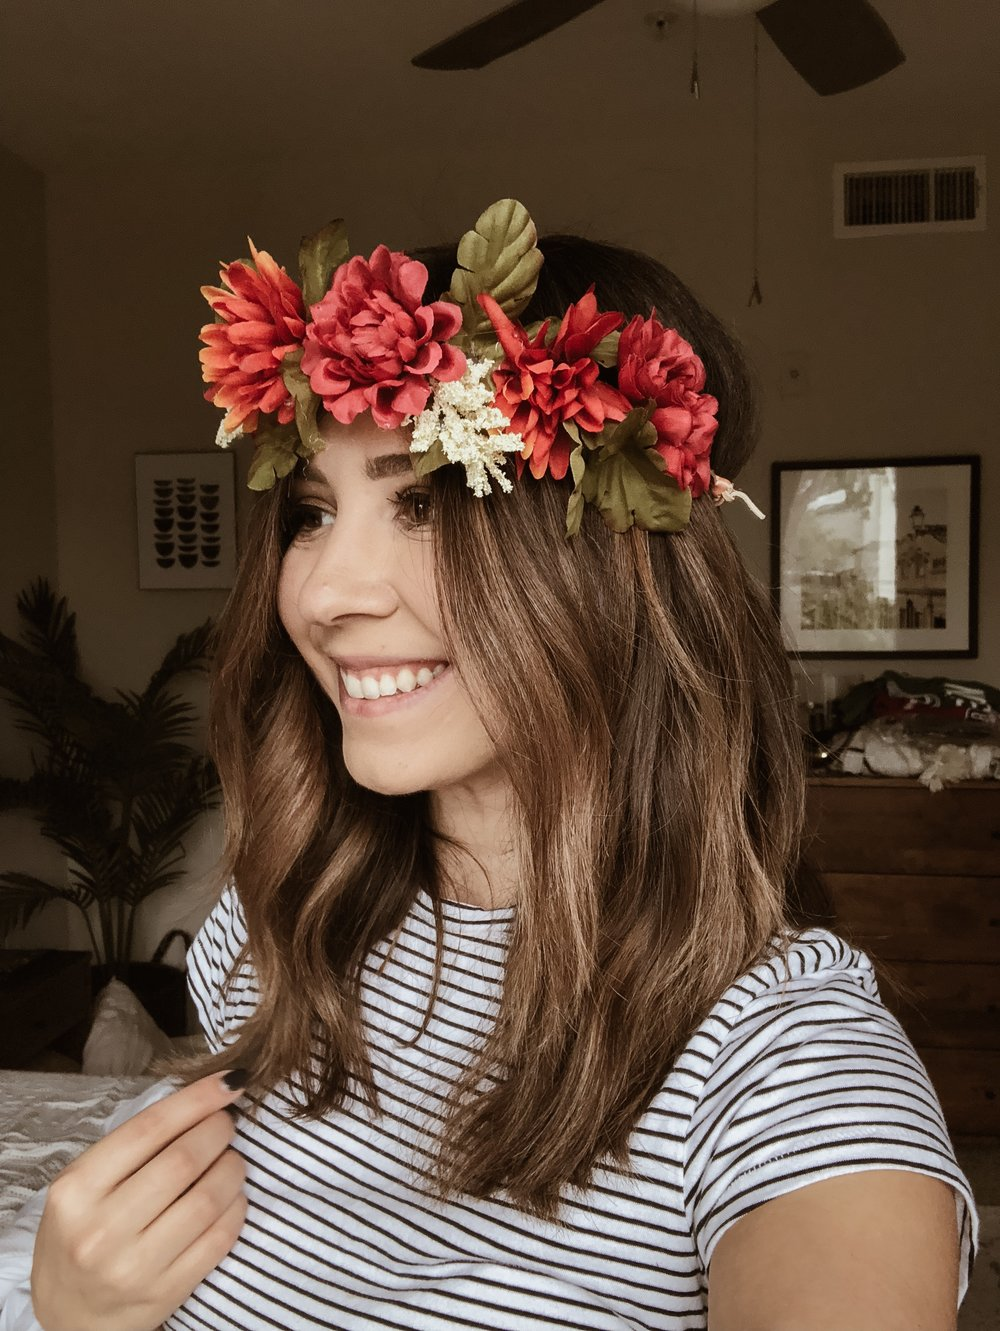 How To Make Your Own Flower Crown The Letter Petite